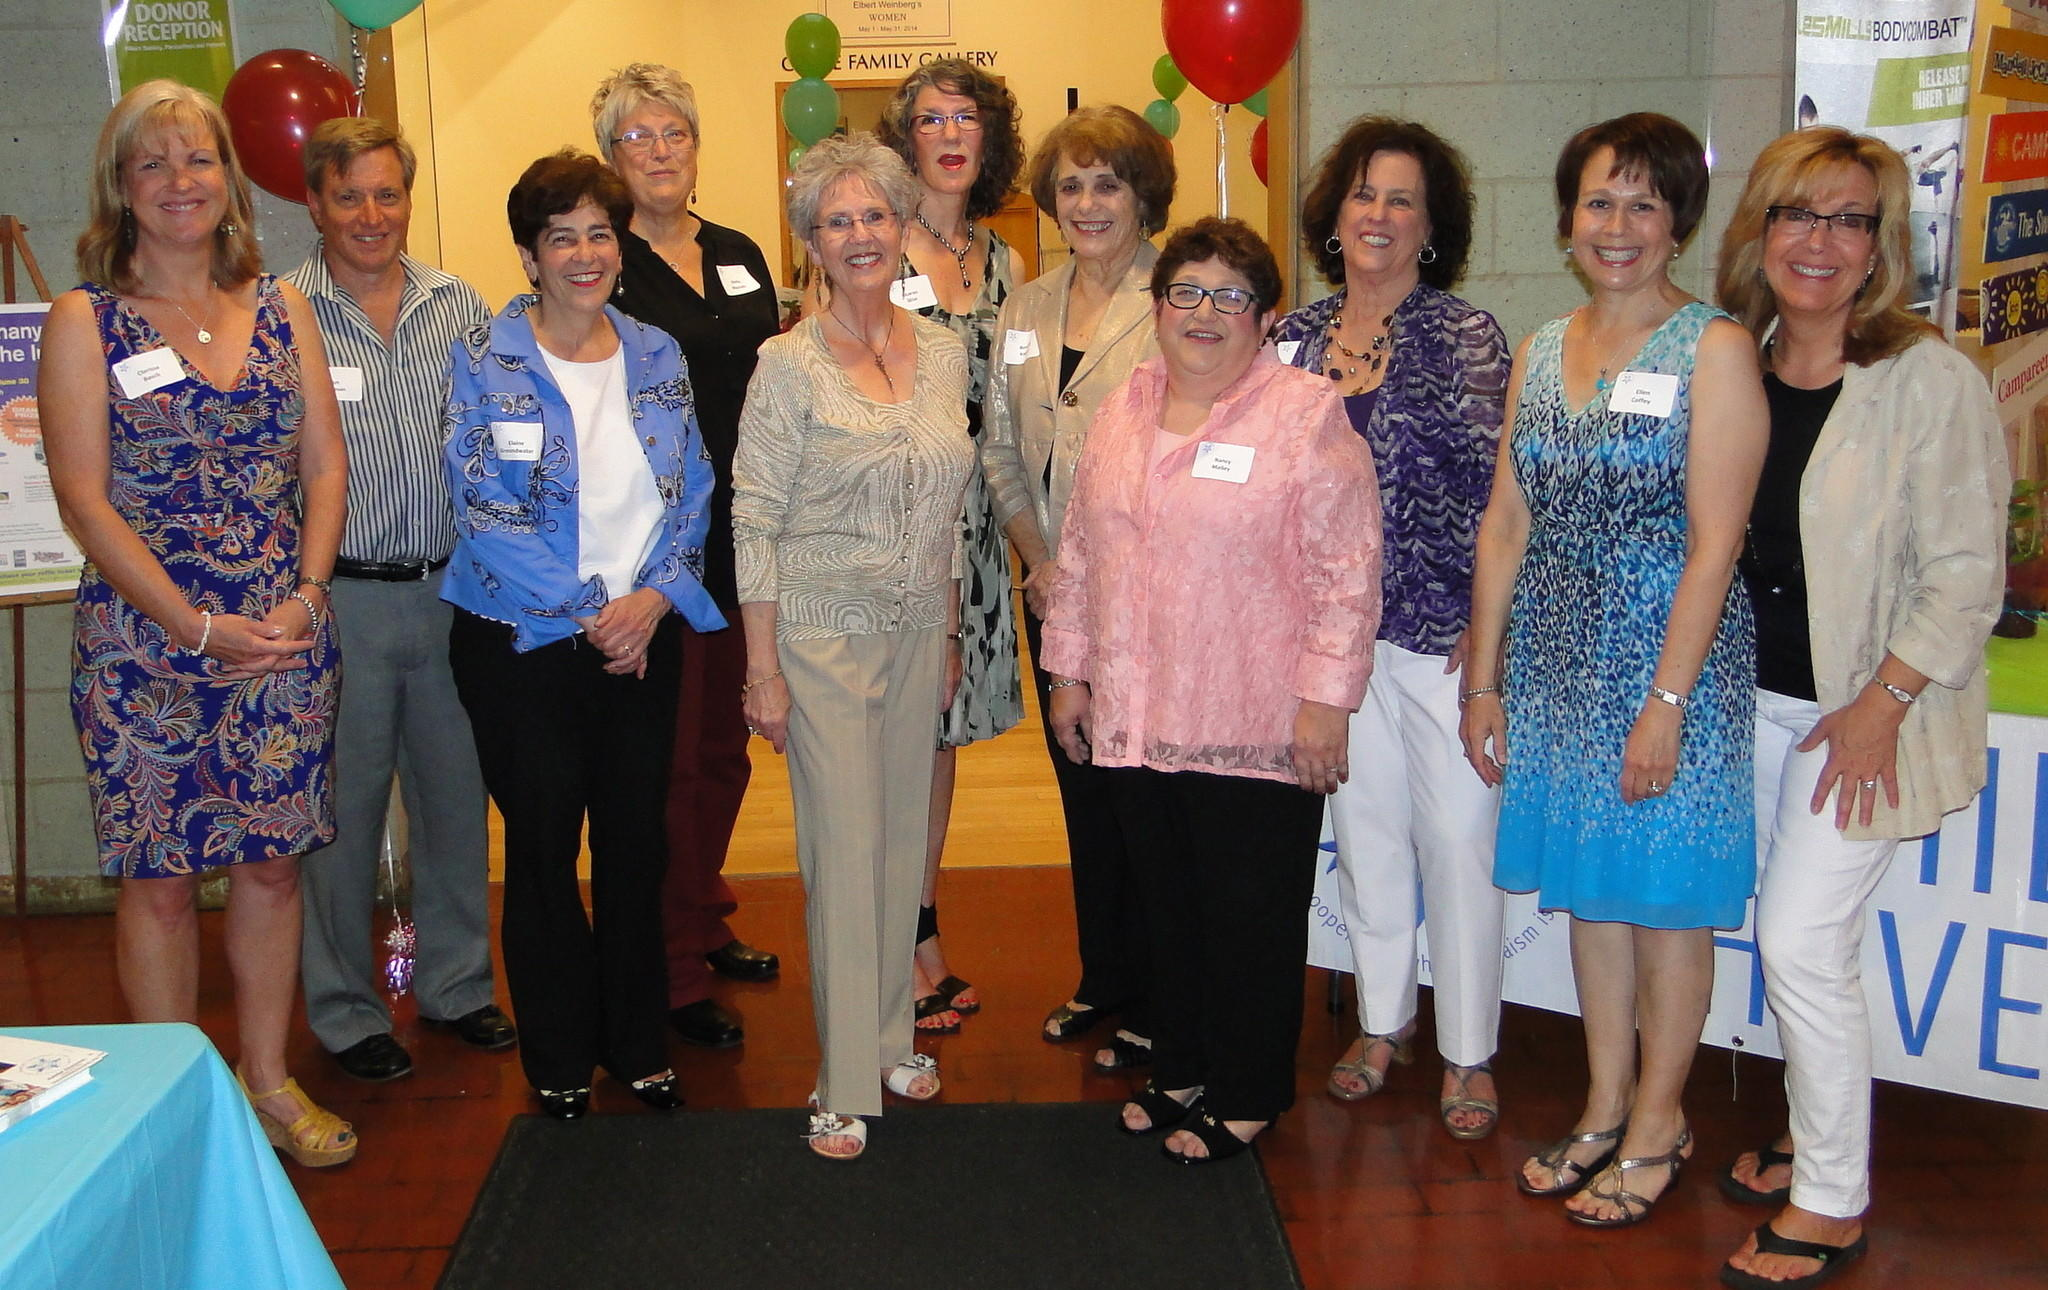 36th anniversary planning committee, left to right: Clarissa Basch, Art Feltman, Elaine Groundwater, Sheila Mascolo, Joan Walden, Sharon Sklar, Beverly Kaplan, Nancy Malley, Marcey Munoz, Ellen Coffey, and Janet Abel, coordinator.